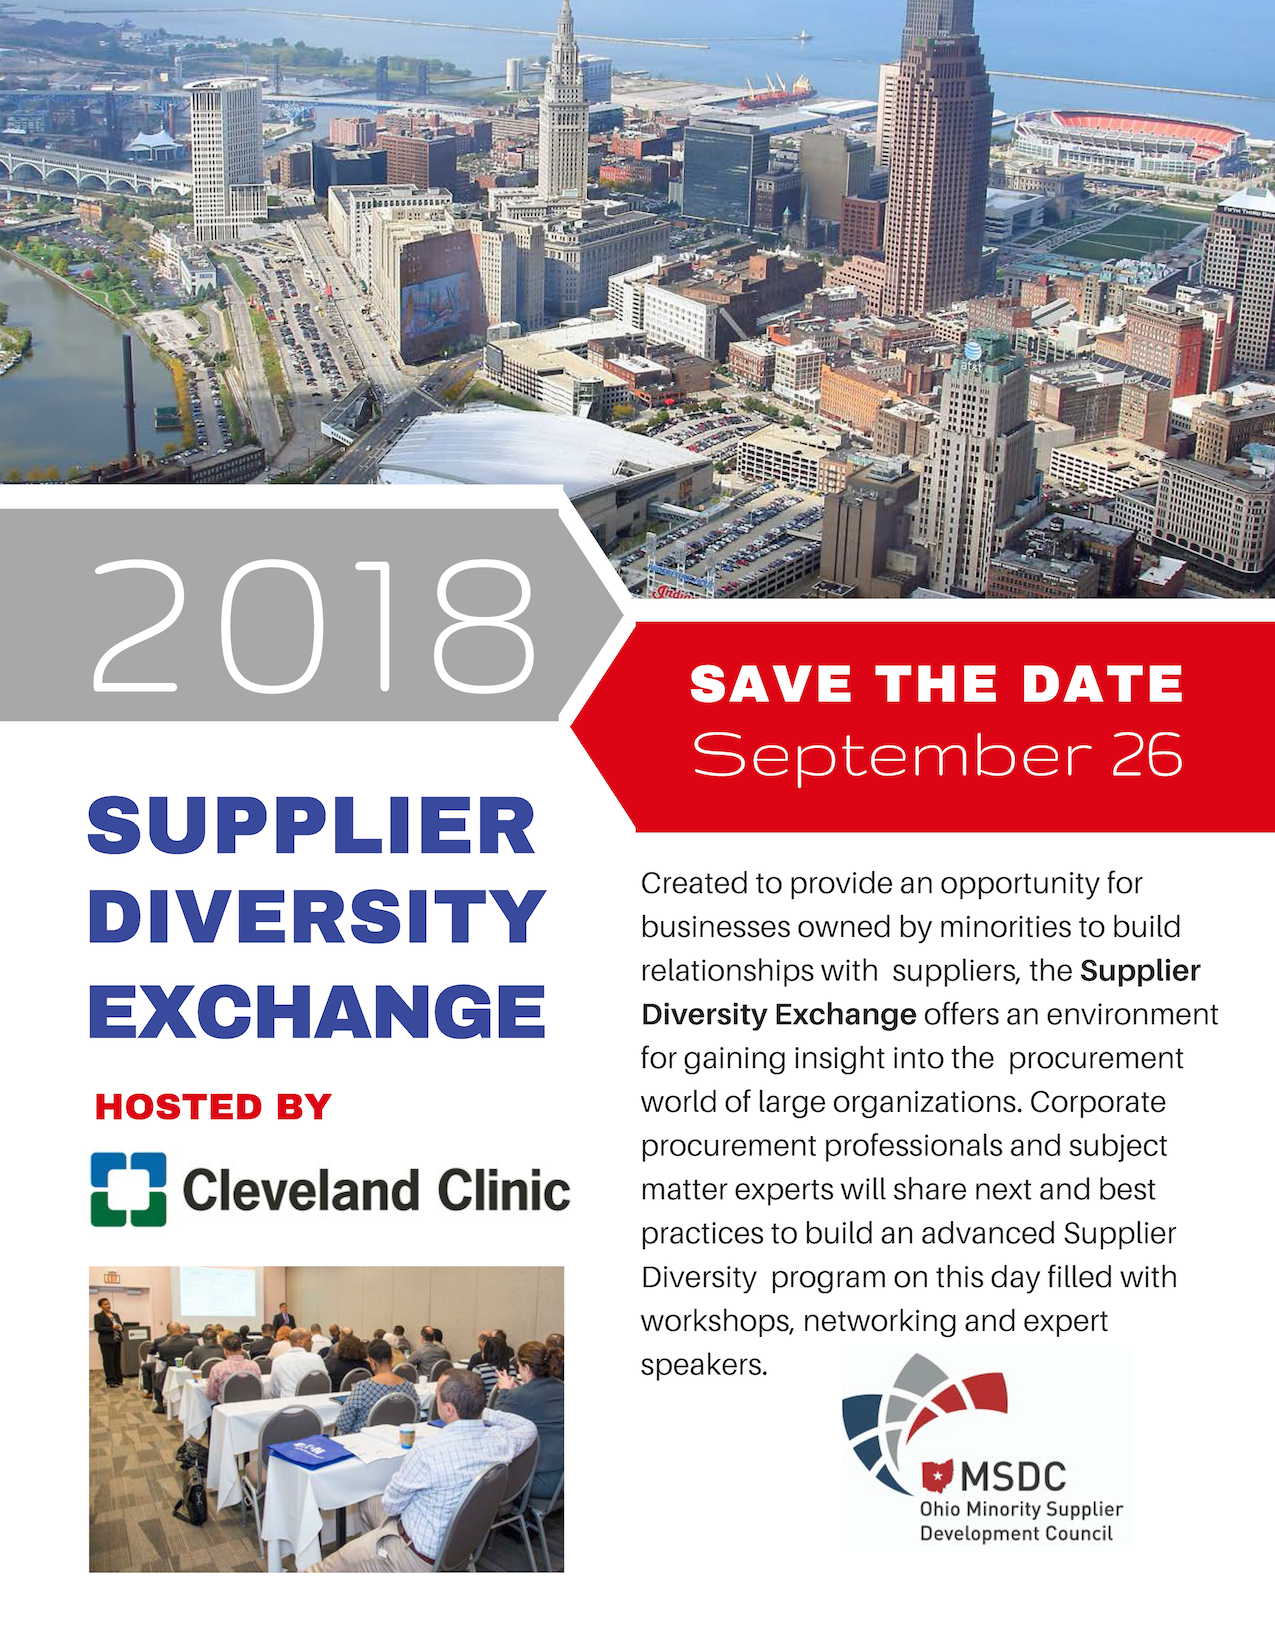 Supplier Diversity Exchange